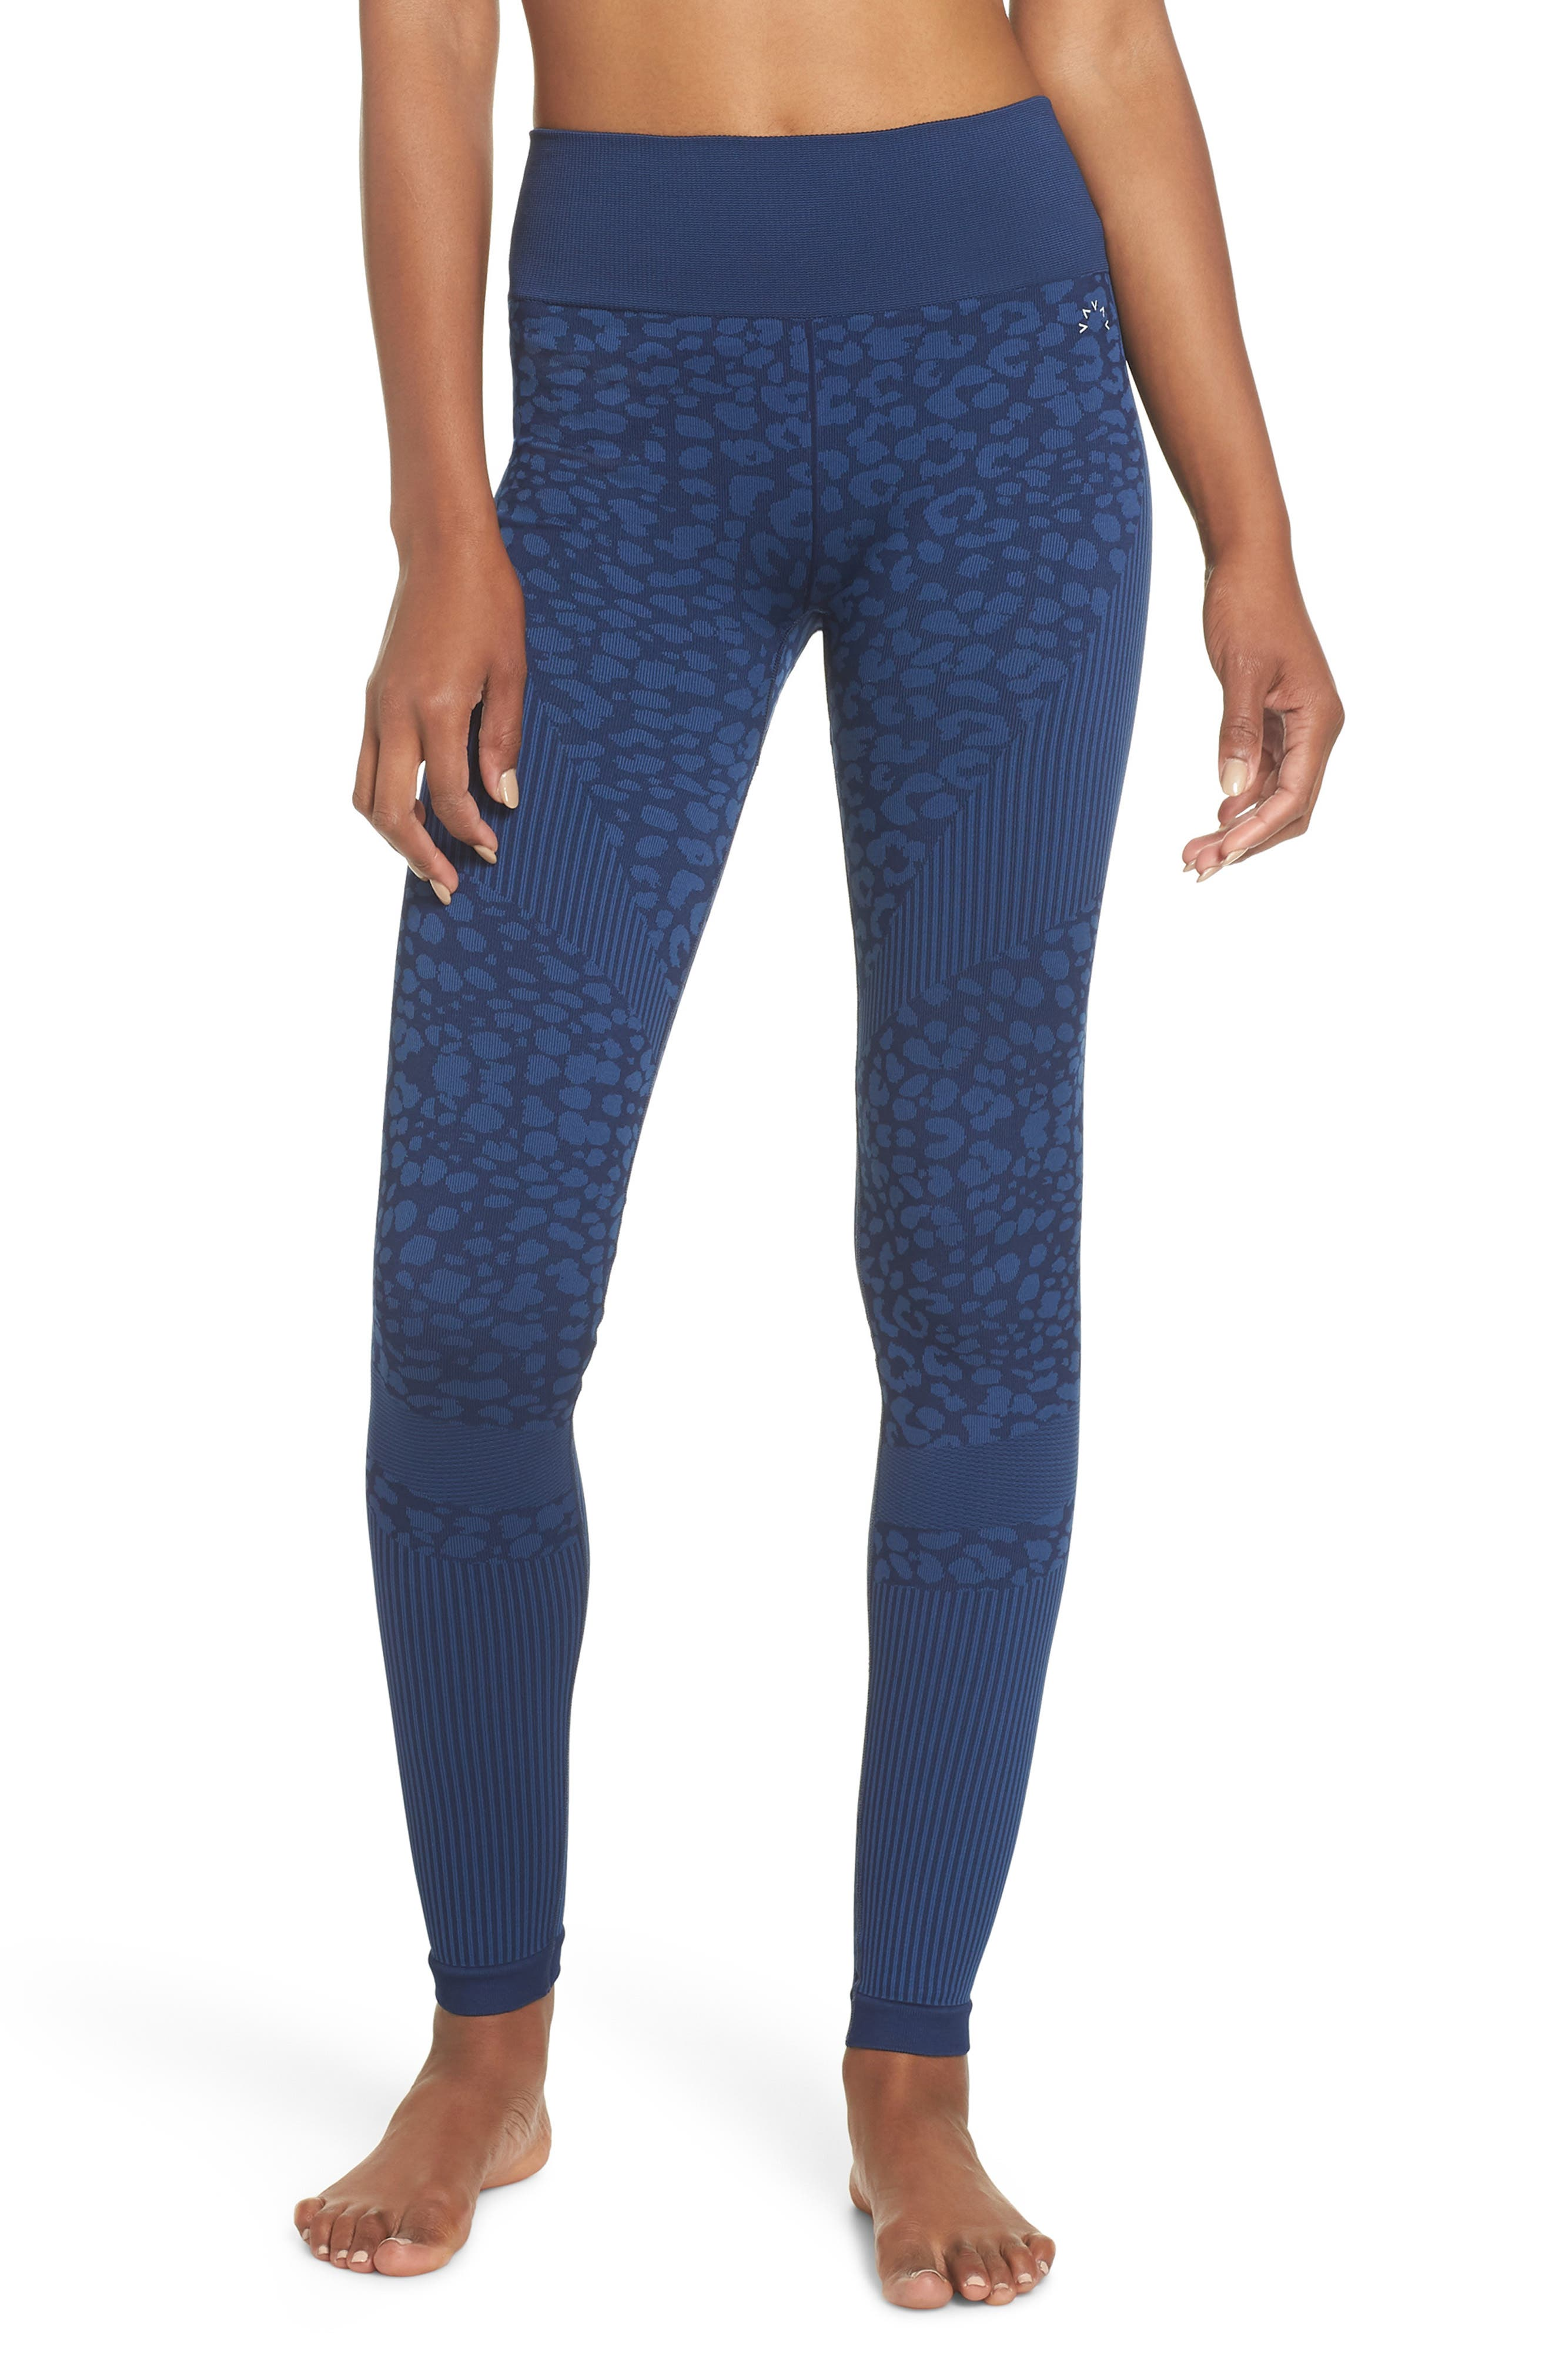 Quincy Seamless Leggings,                         Main,                         color, NAVY LEOPARD